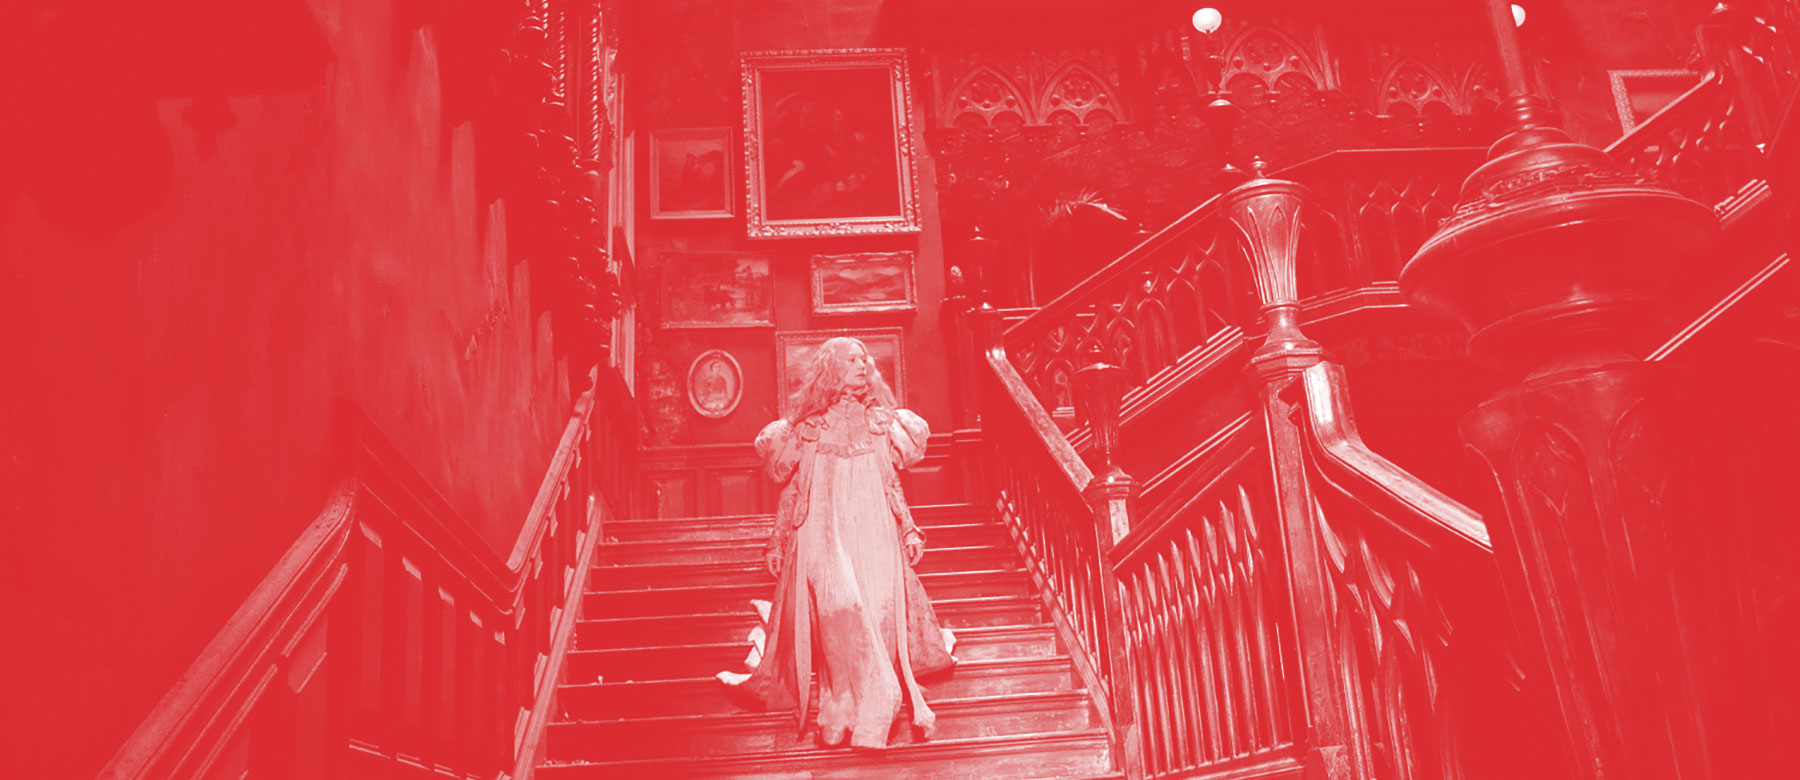 oeil-pour-oeil-2-index-grafik-Crimson-Peak-cinema-01